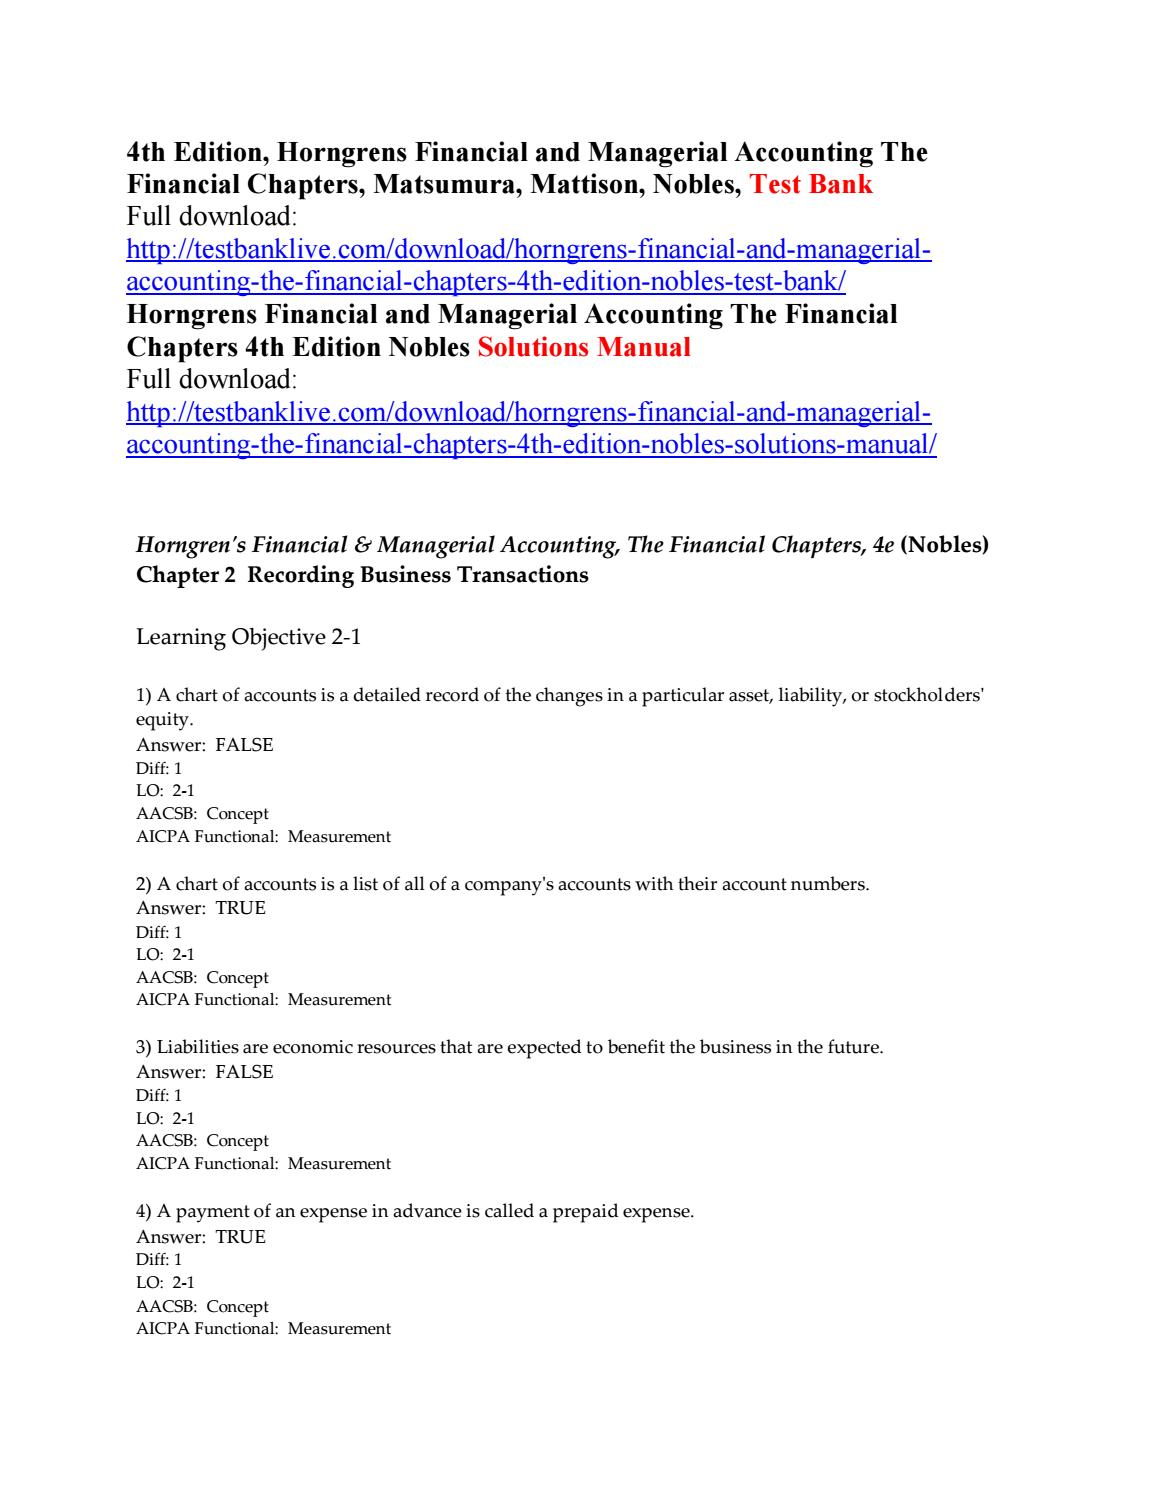 Horngrens financial and managerial accounting the financial chapters 4th  edition nobles test bank by lololo111 - issuu